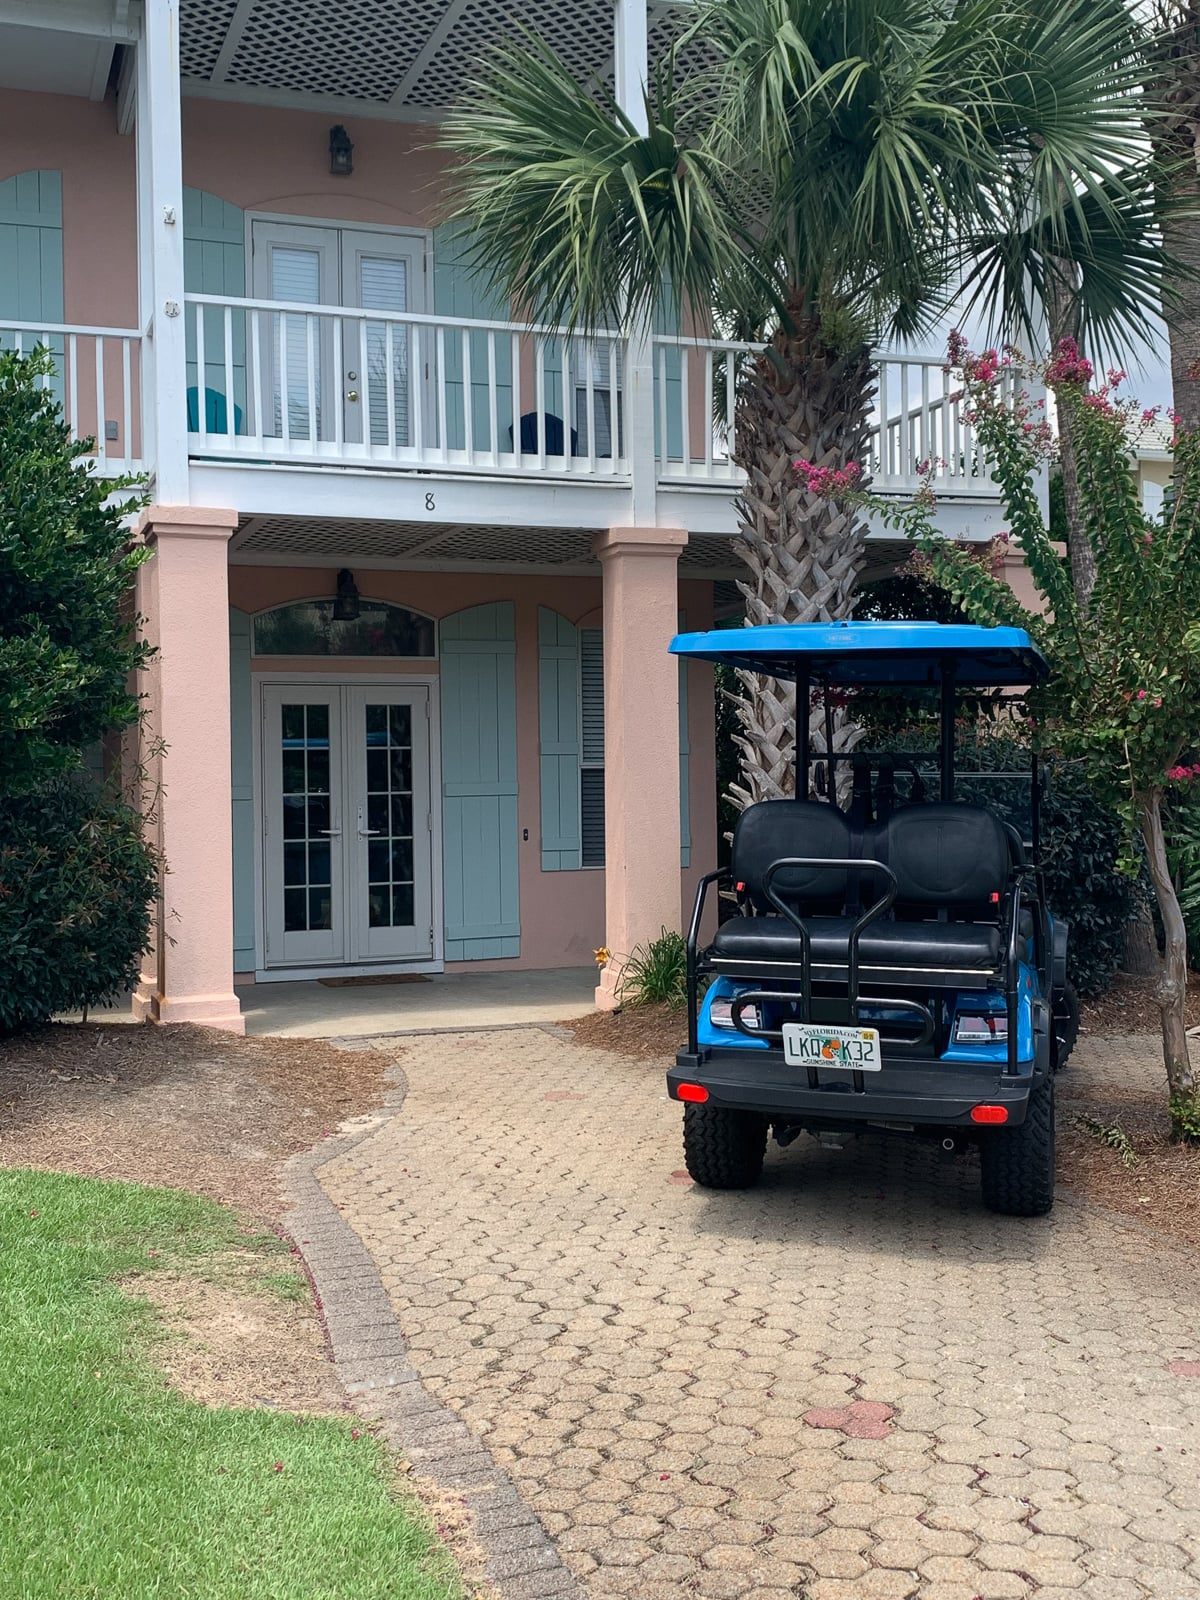 Lifted 6-Seater Electric Golf Cart at Emerald Shores on CR 30a